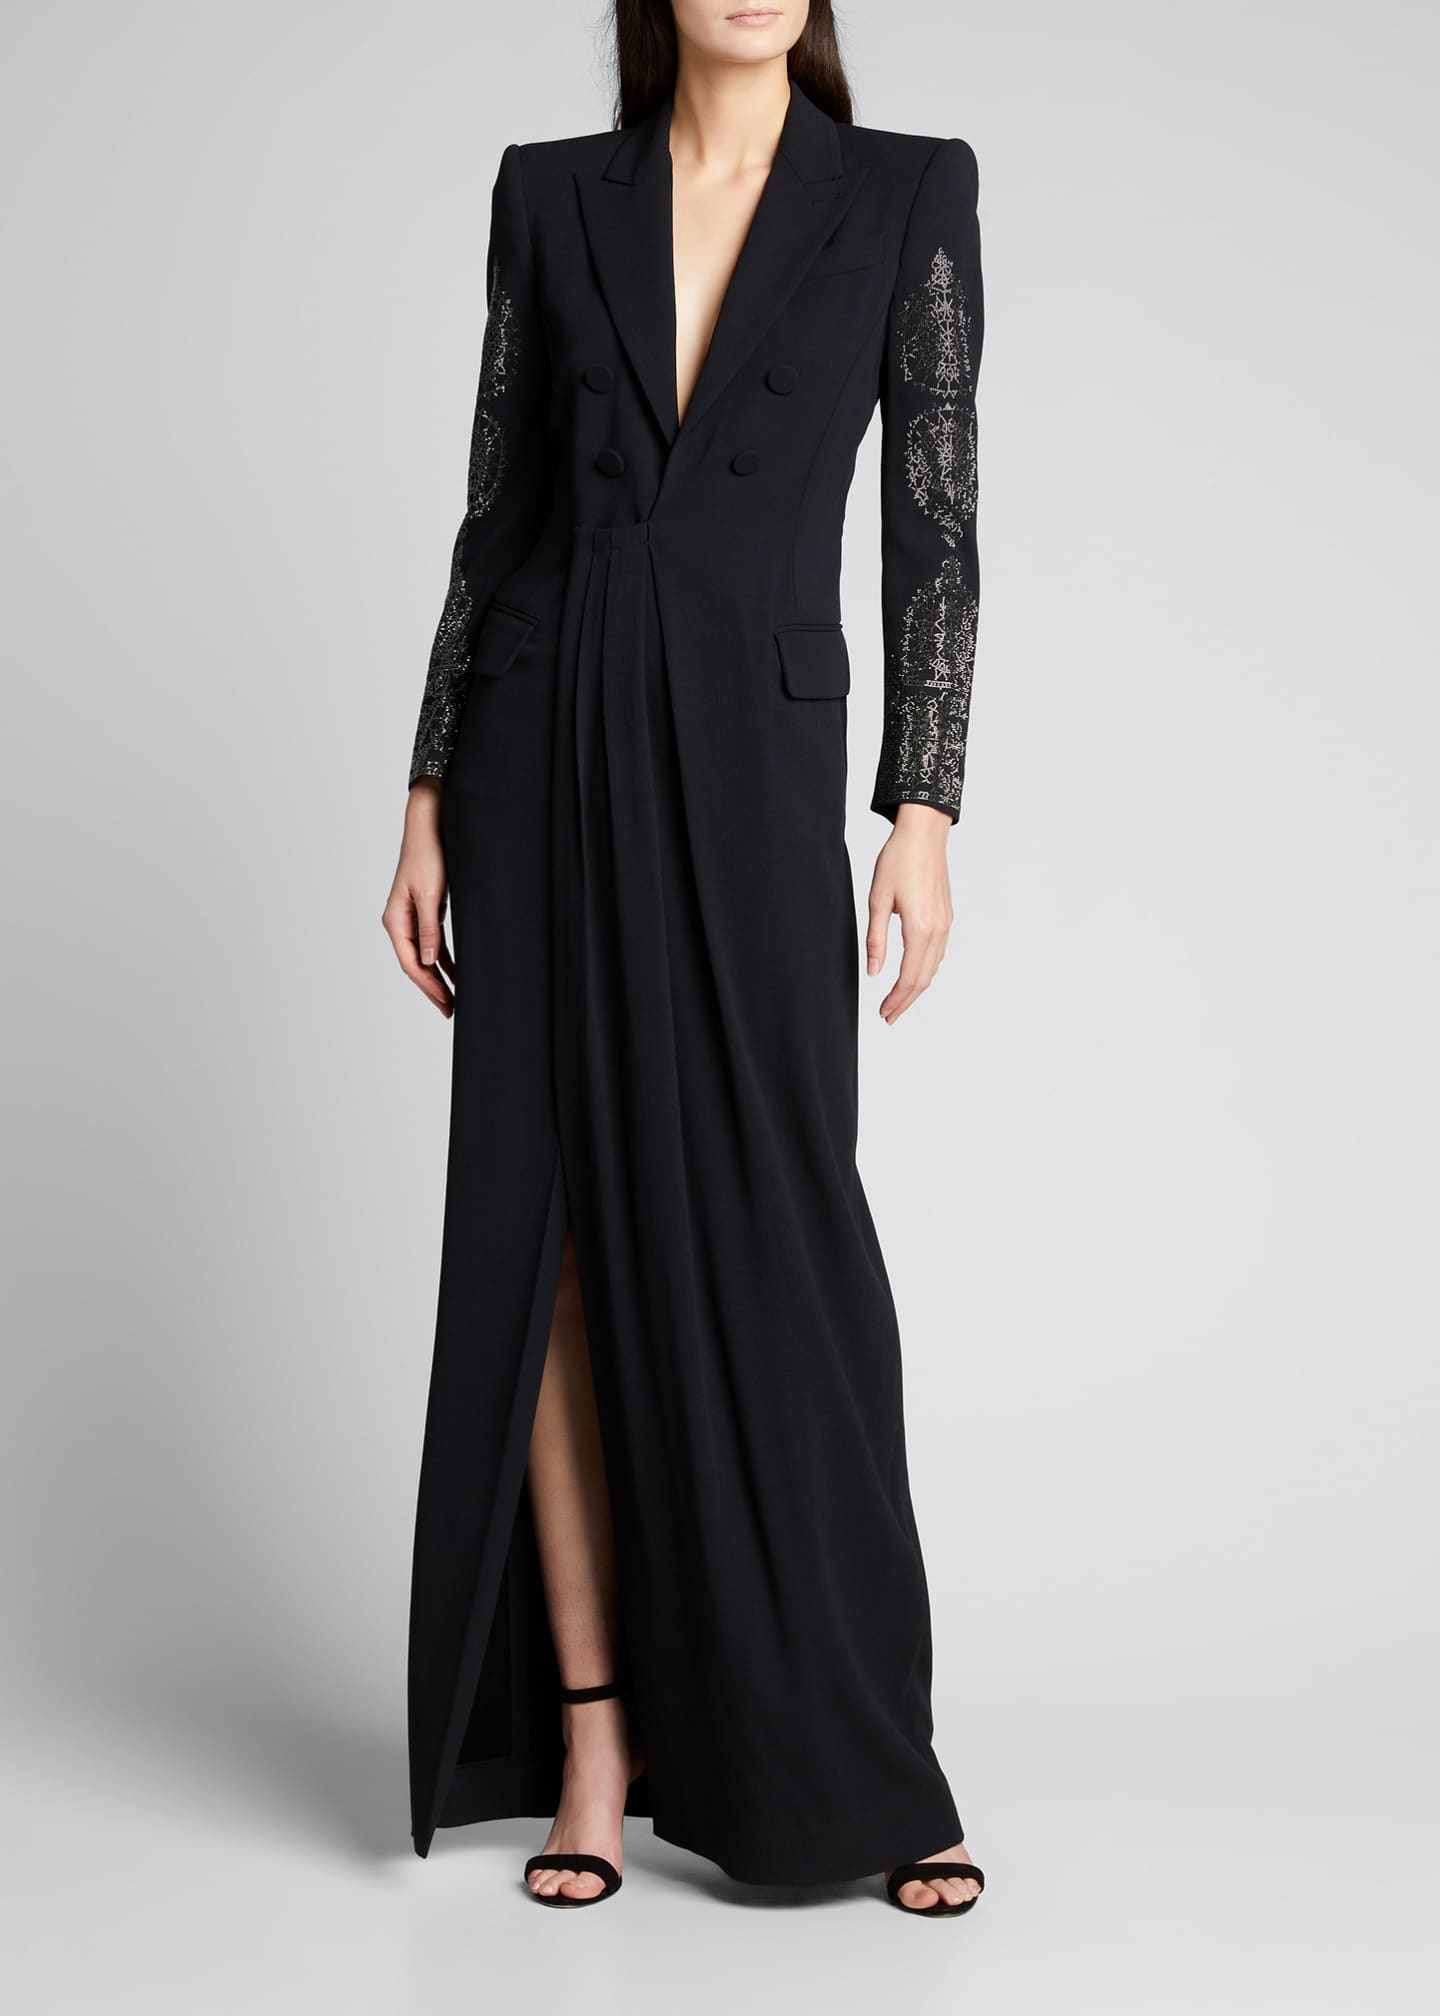 Image 1 of 5: Vintage Gothic Spire Embellished Dress